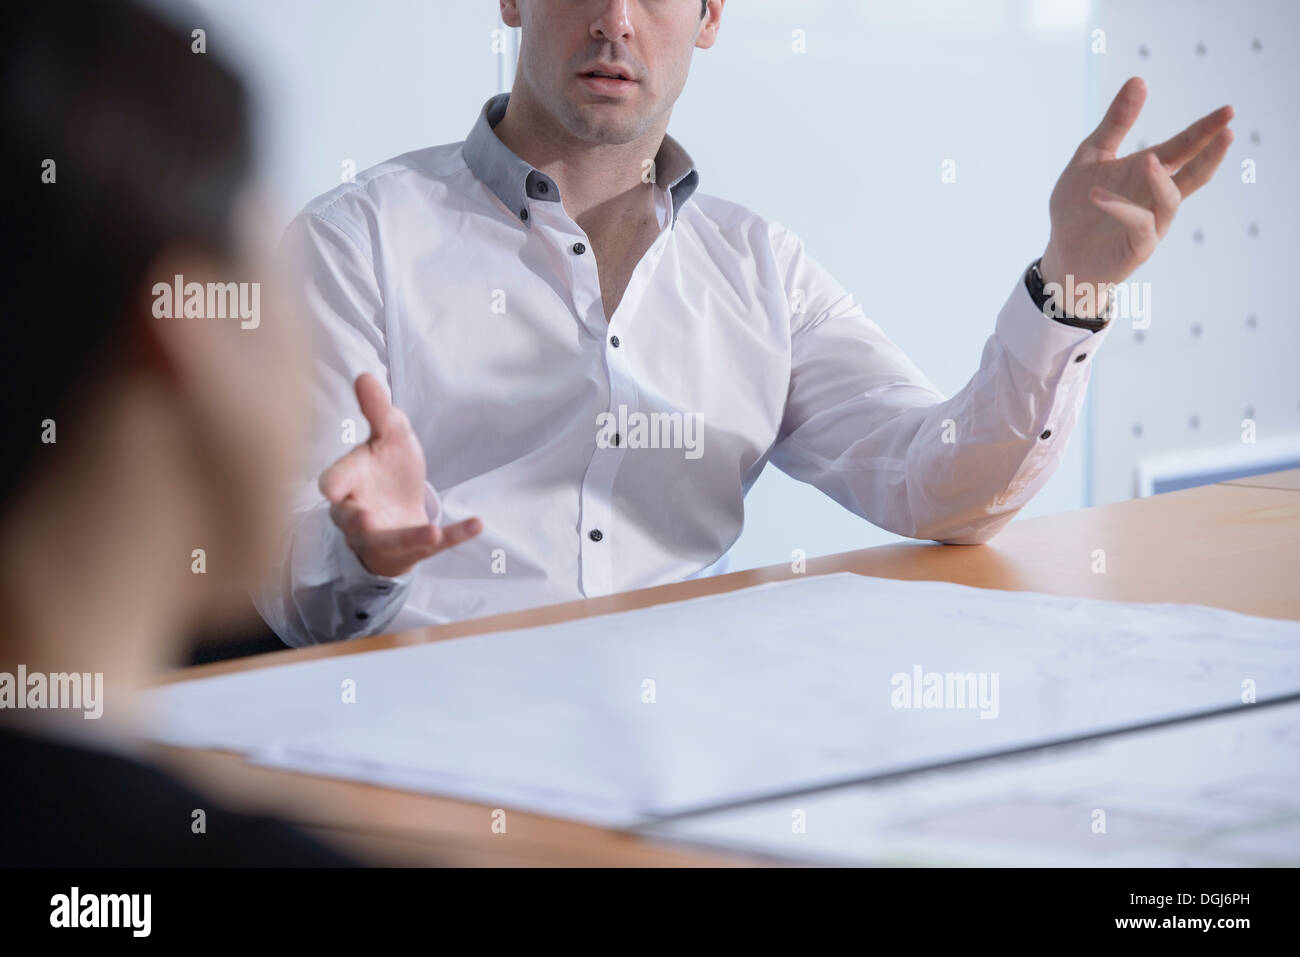 Man gesturing in business meeting, close up - Stock Image